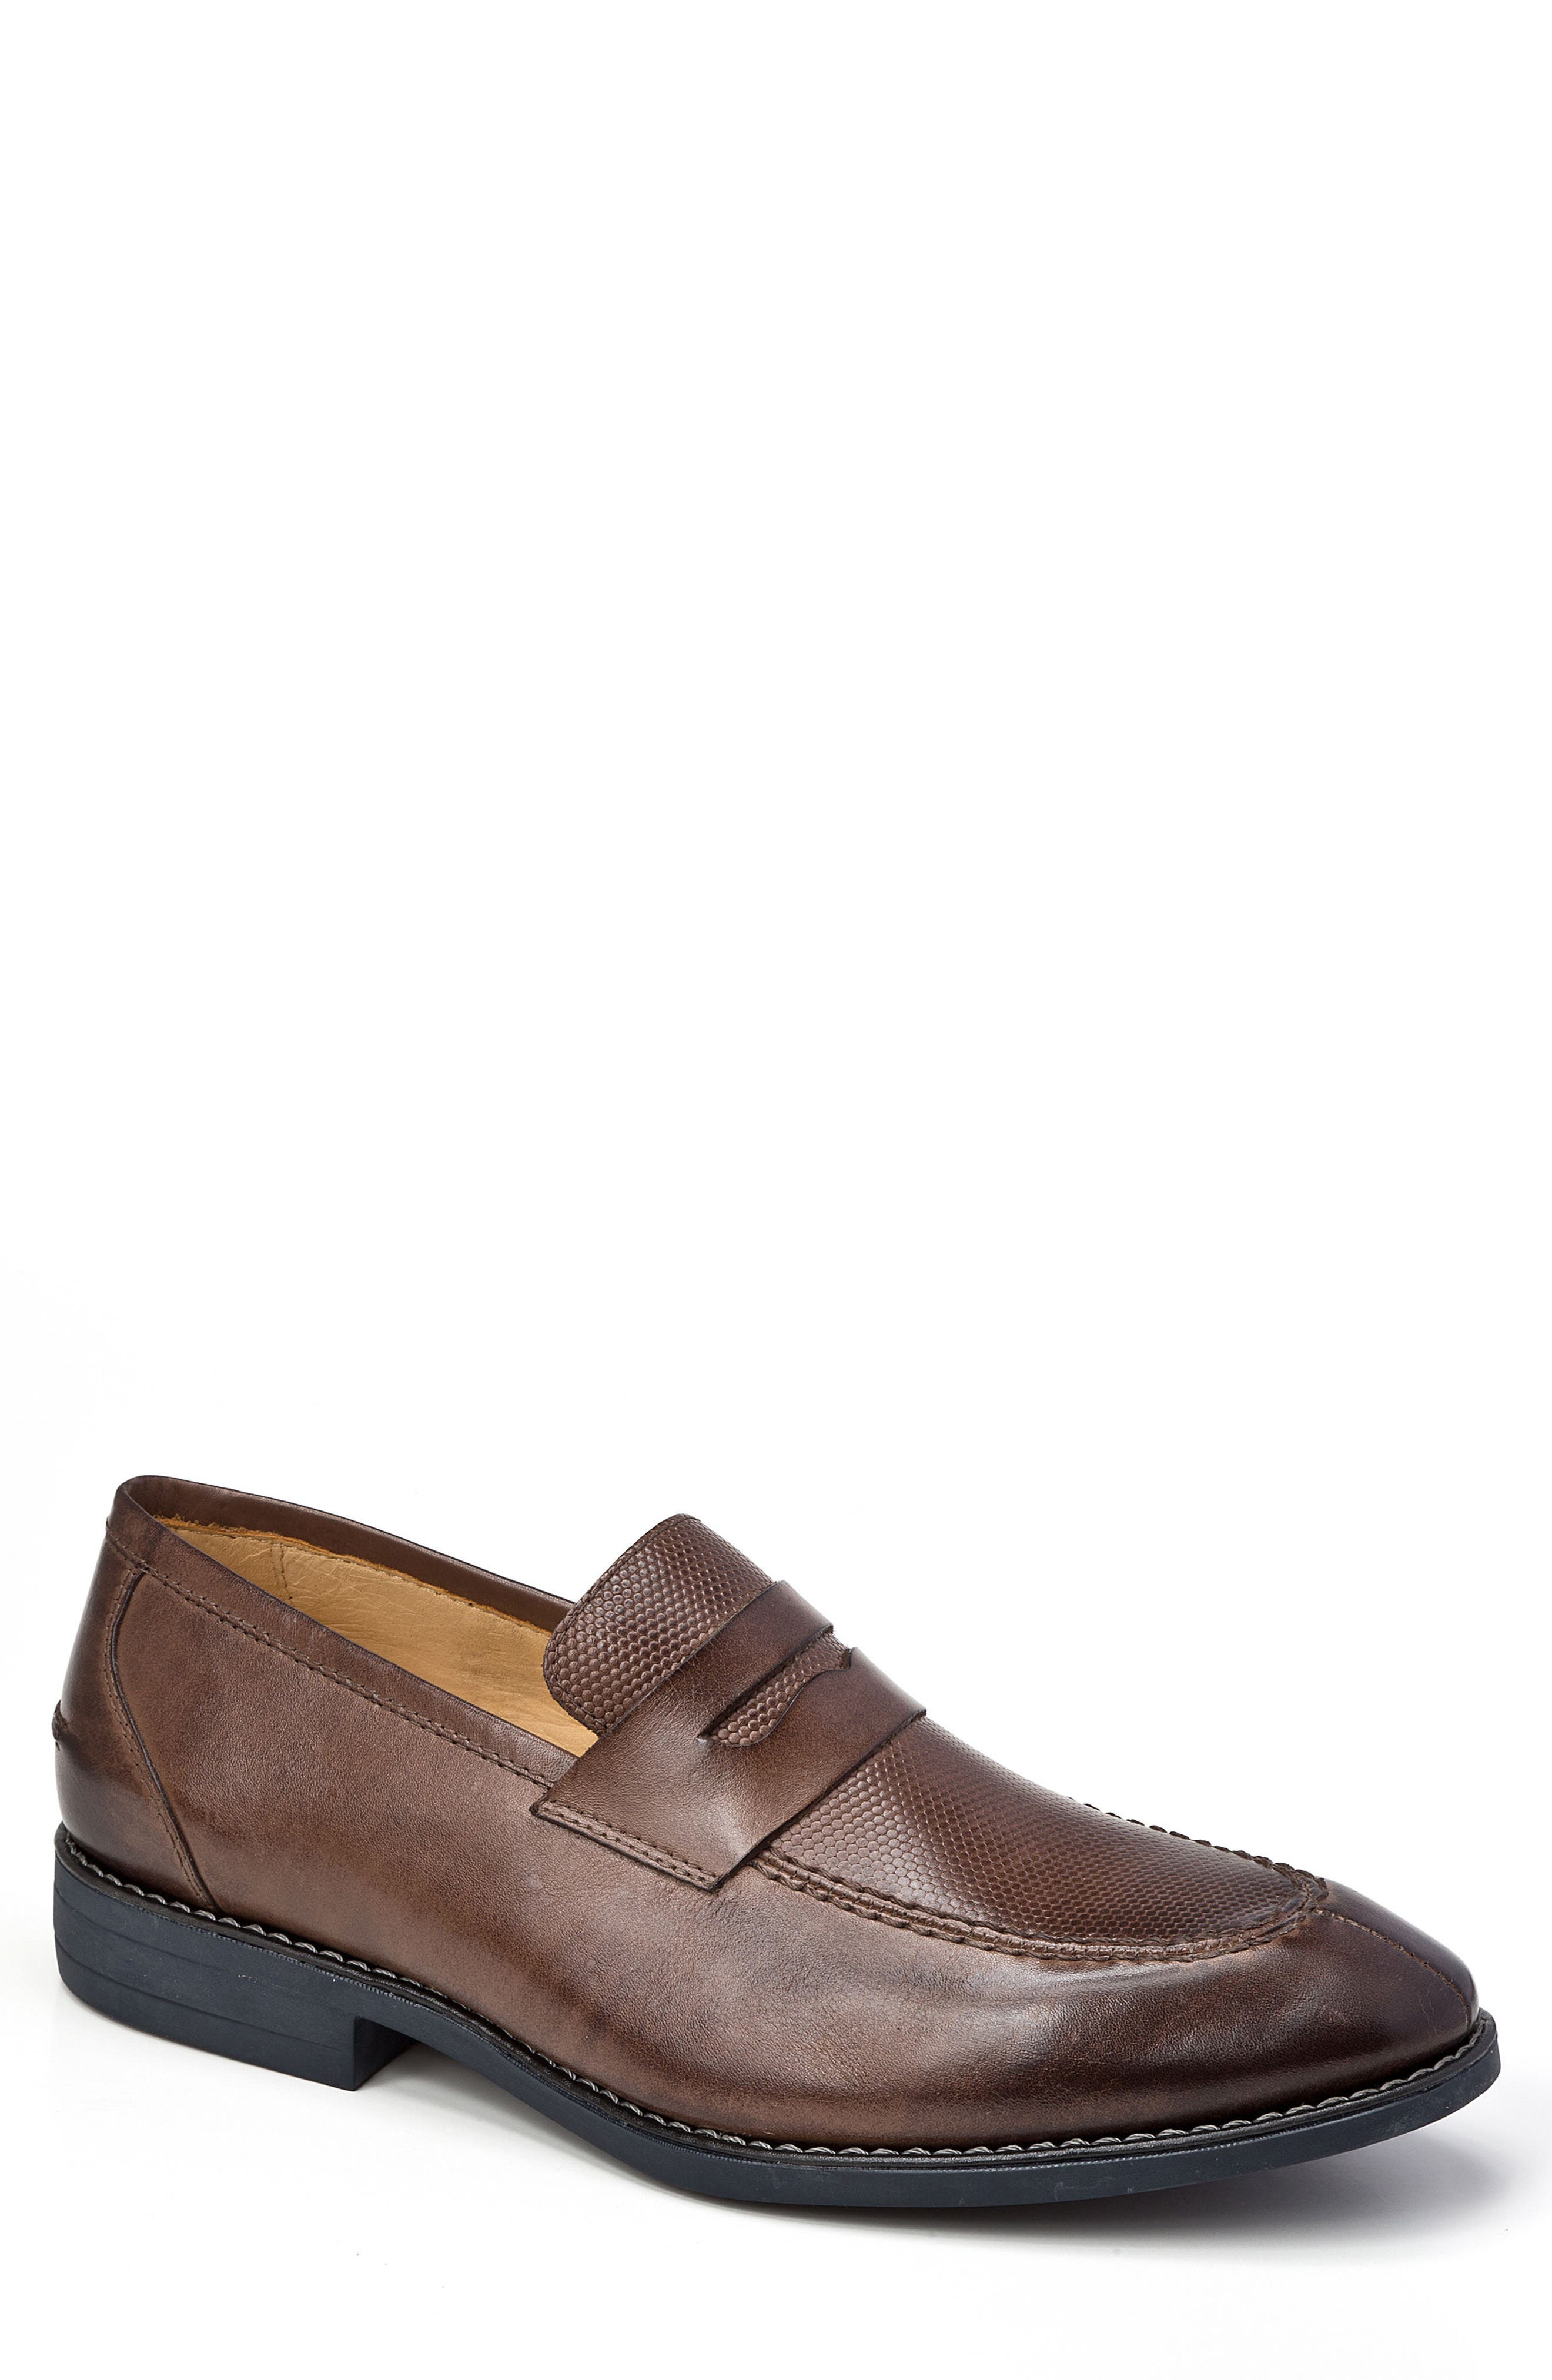 Sandro Moscoloni Maestro Penny Loafer - Brown